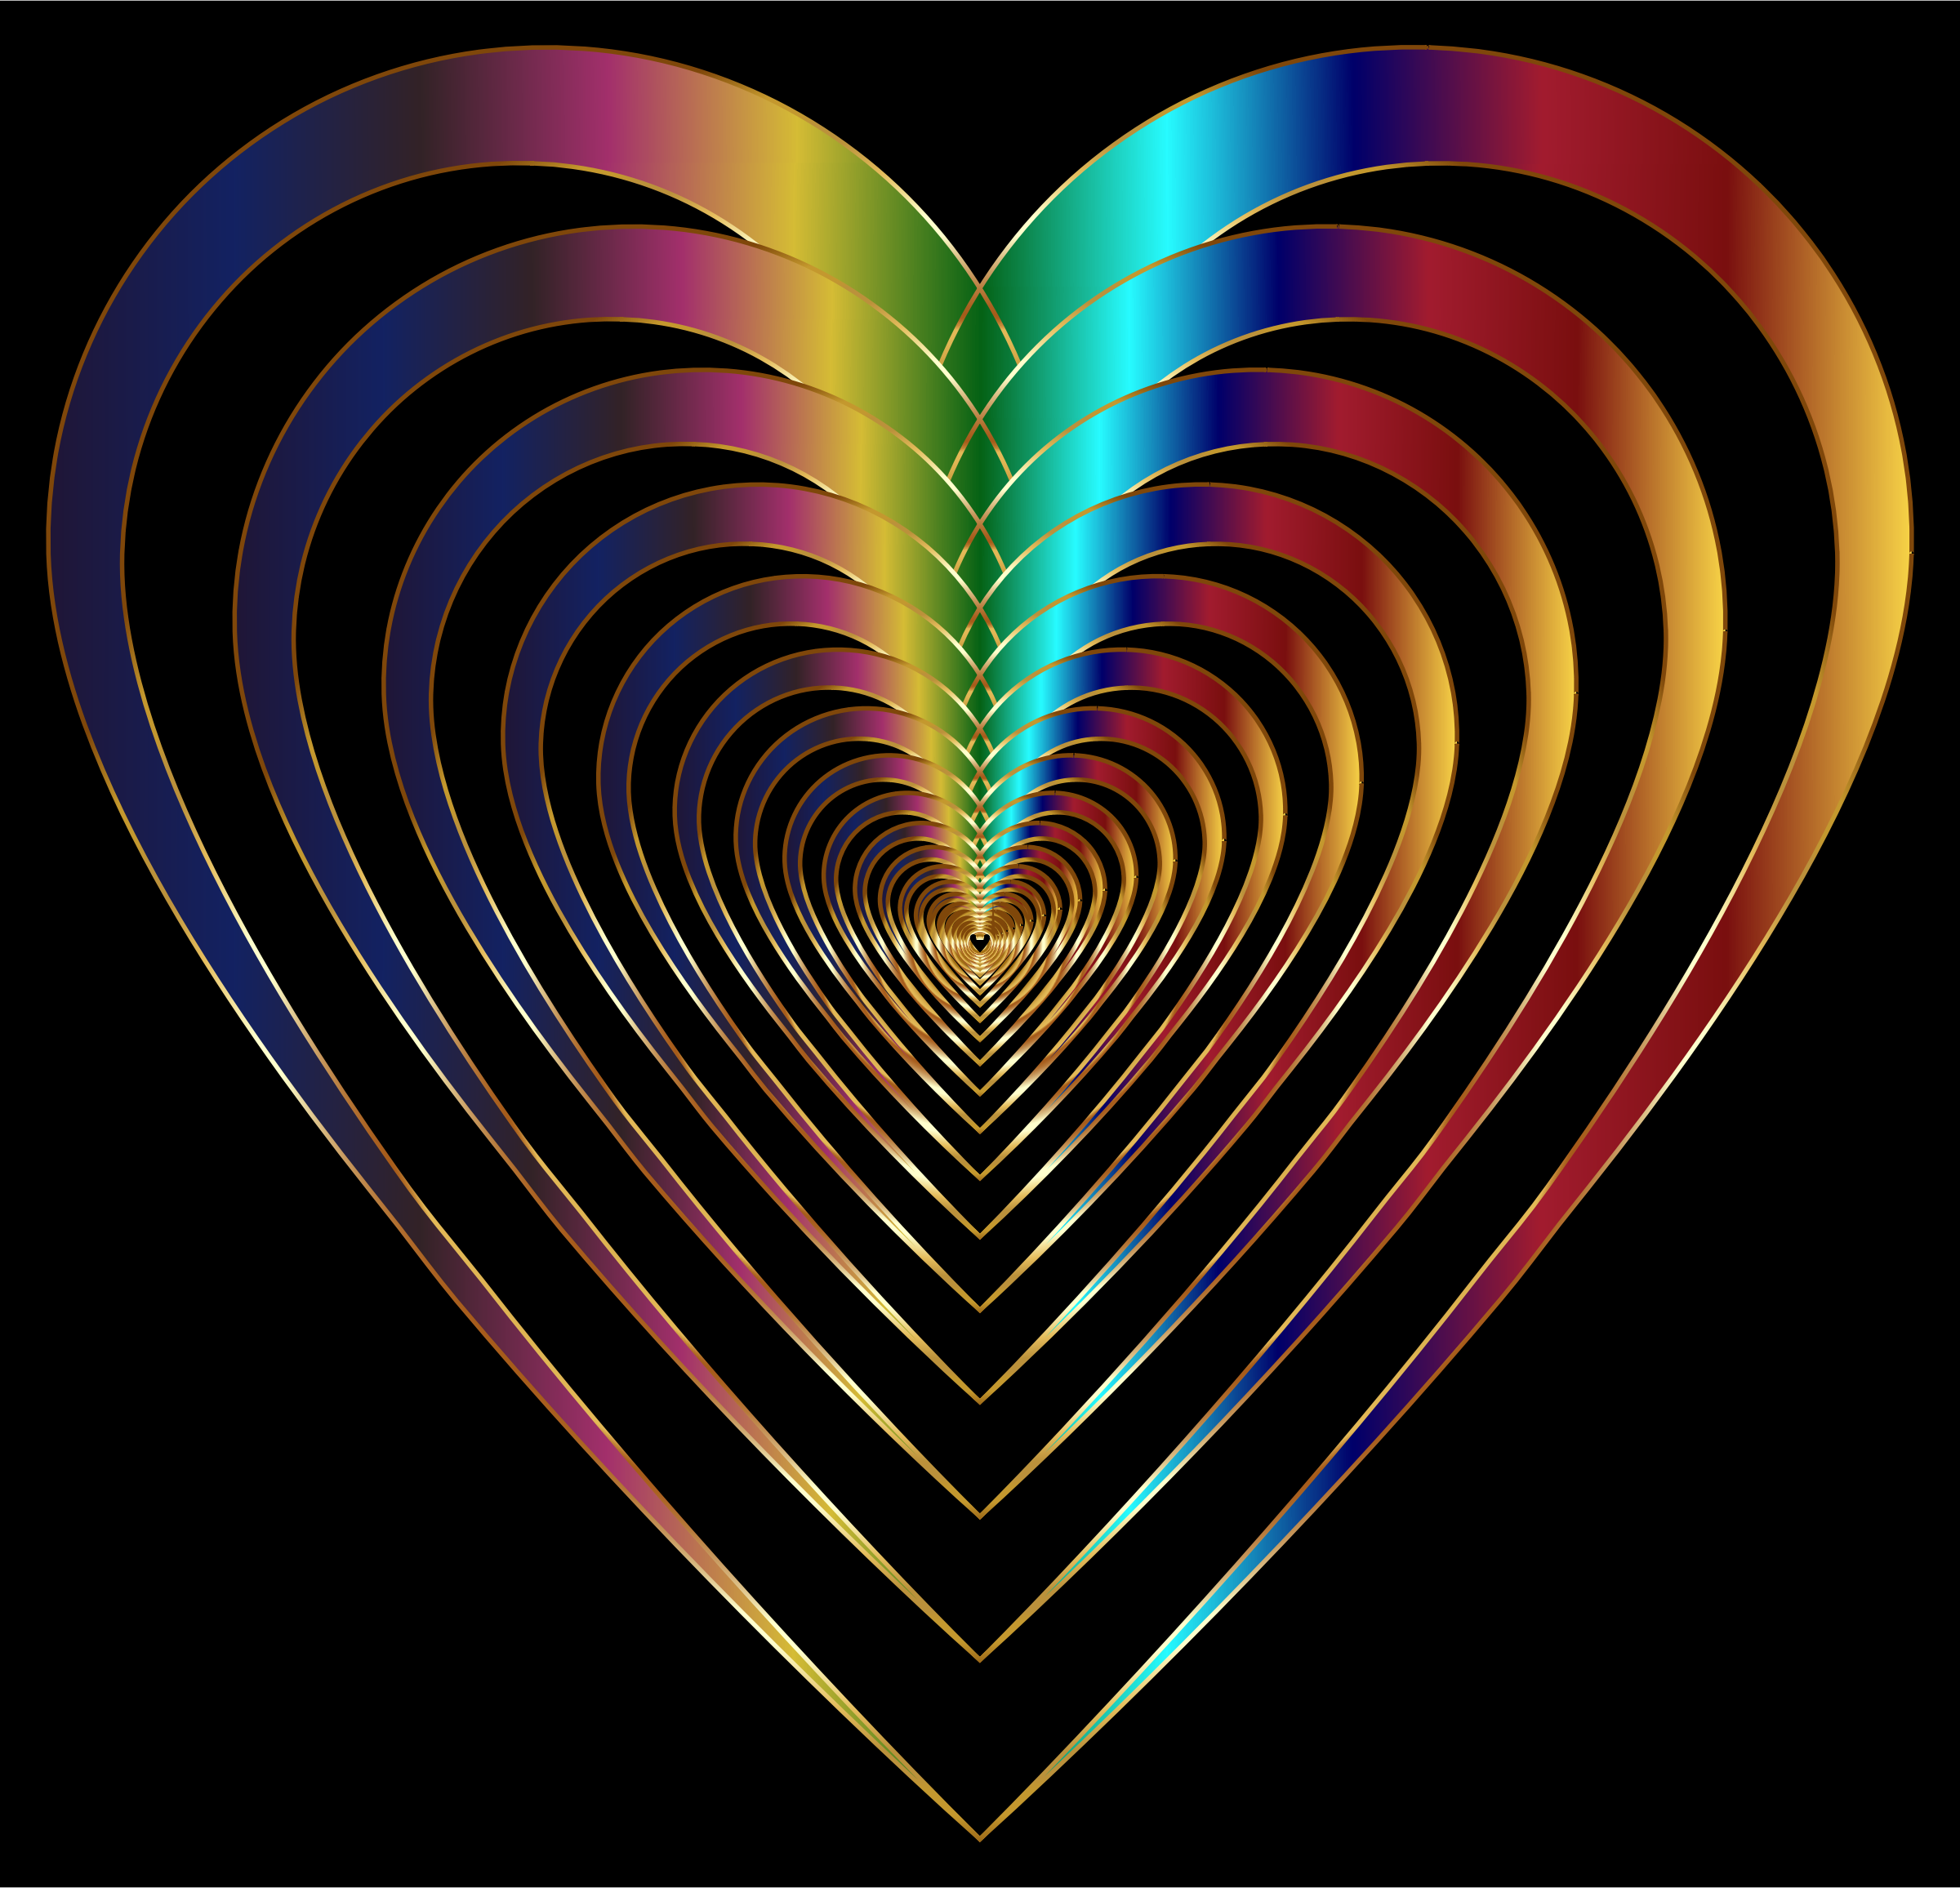 Chromatic Love 5 by GDJ